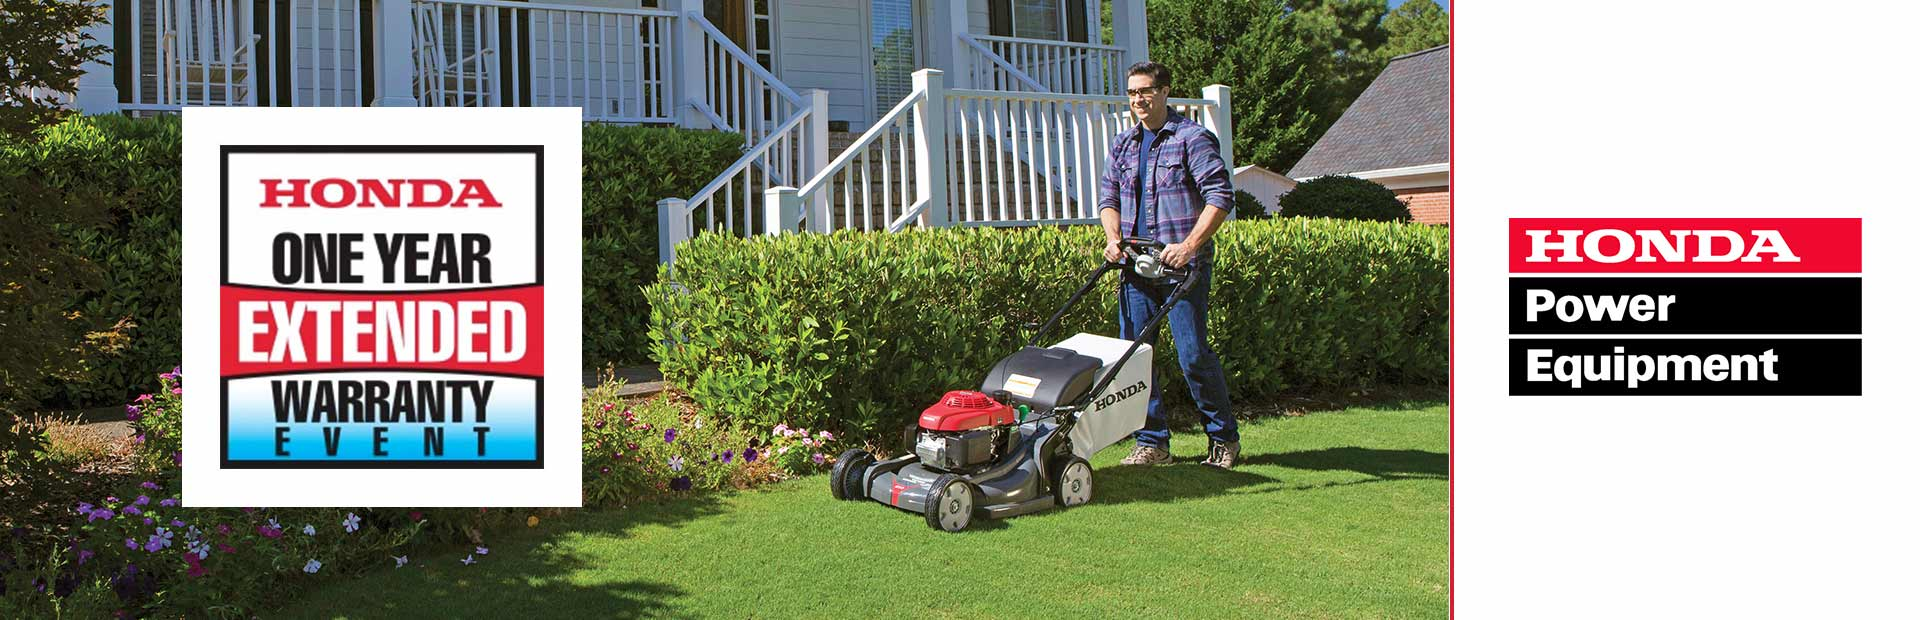 Honda Power Equipment: One Year Extended Warranty on Residential Mowers